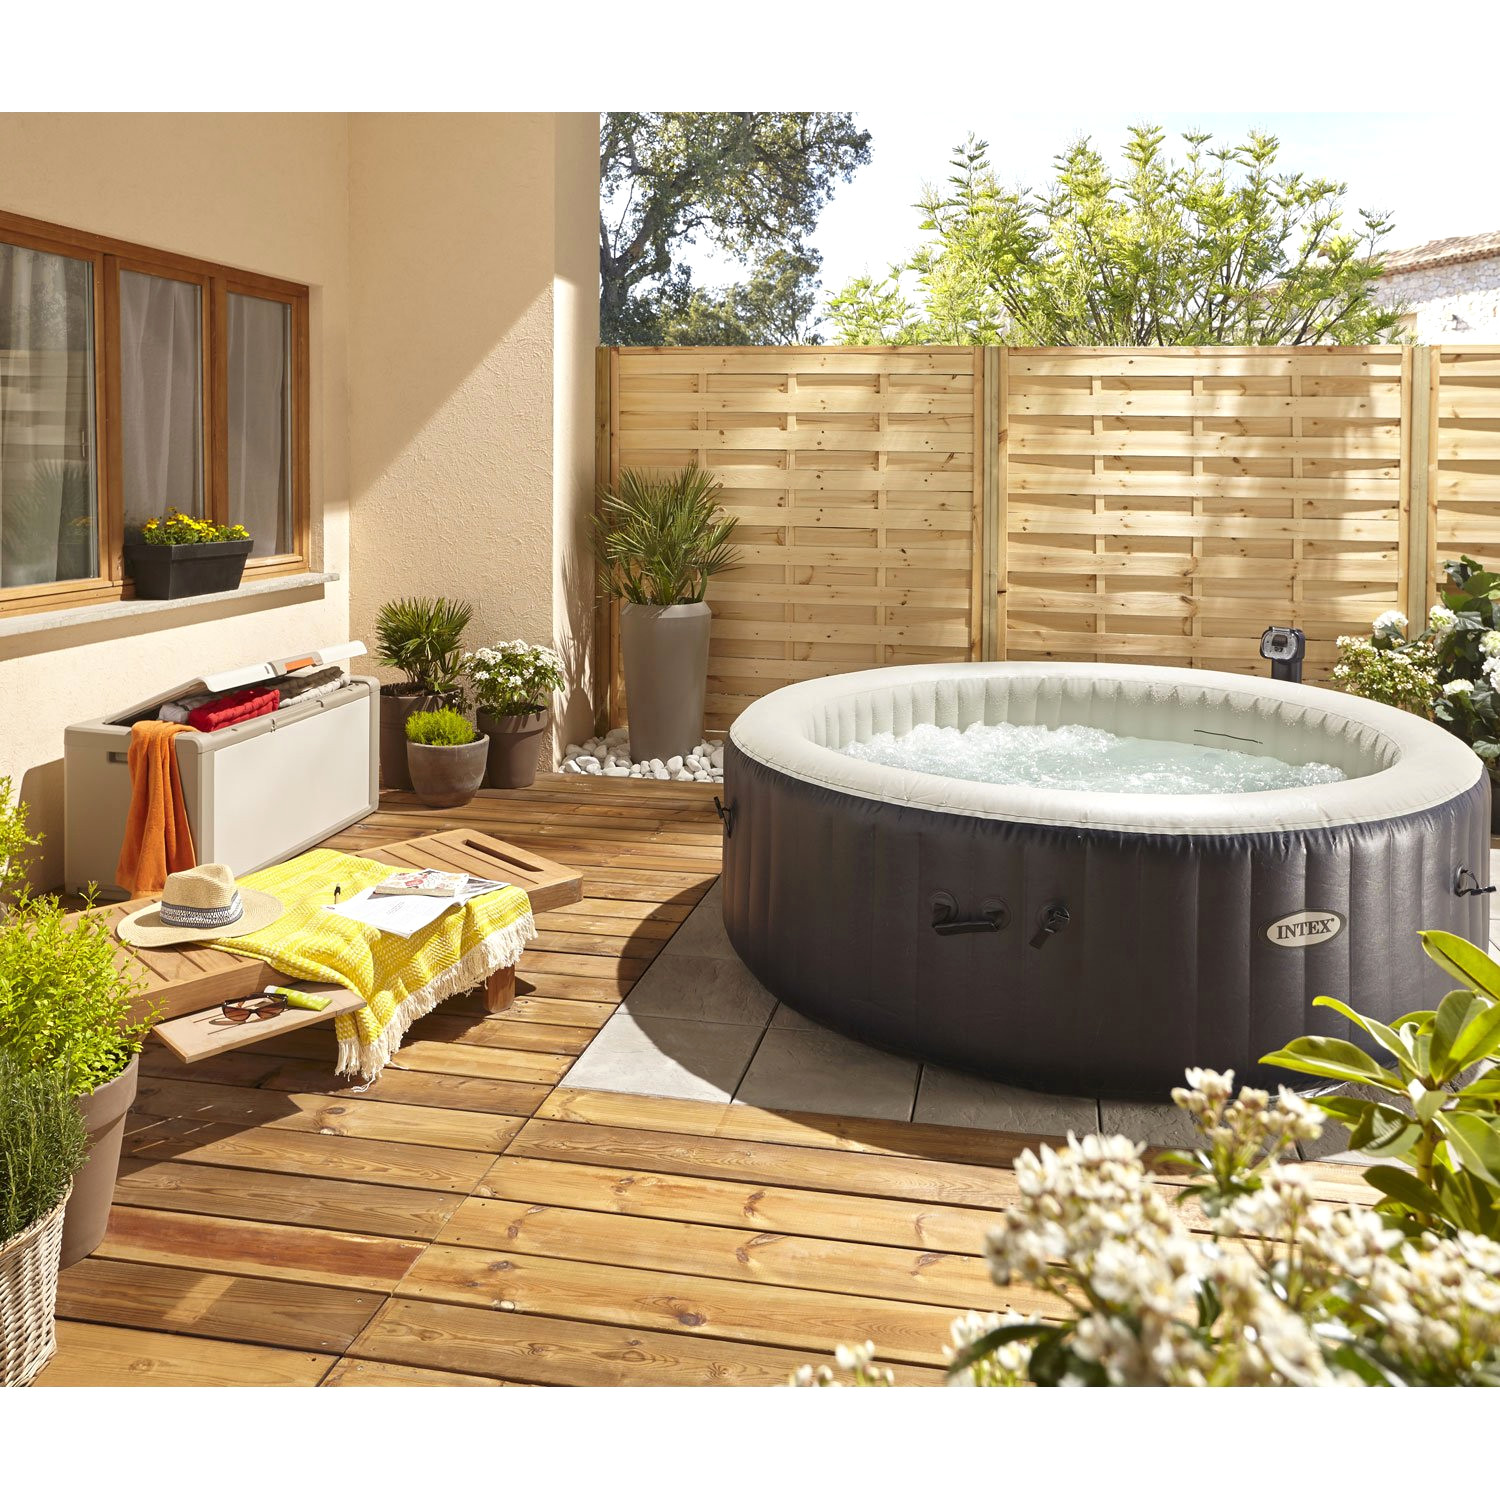 spa gonflable terrasse bois